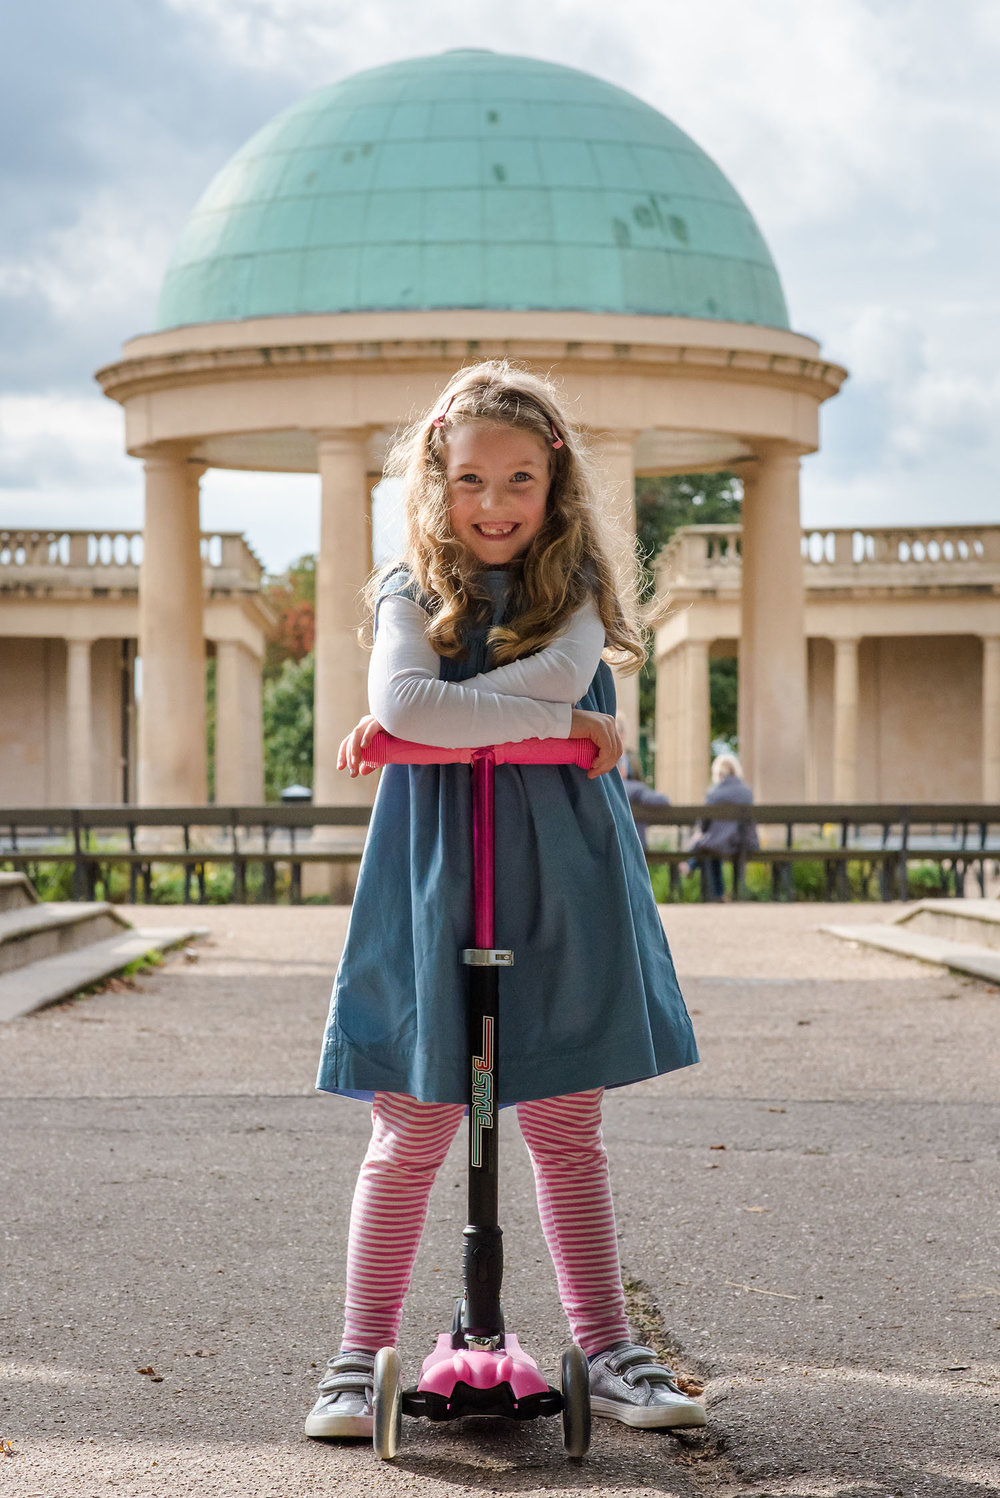 jma-photography-girl-with-pink-scooter.jpg